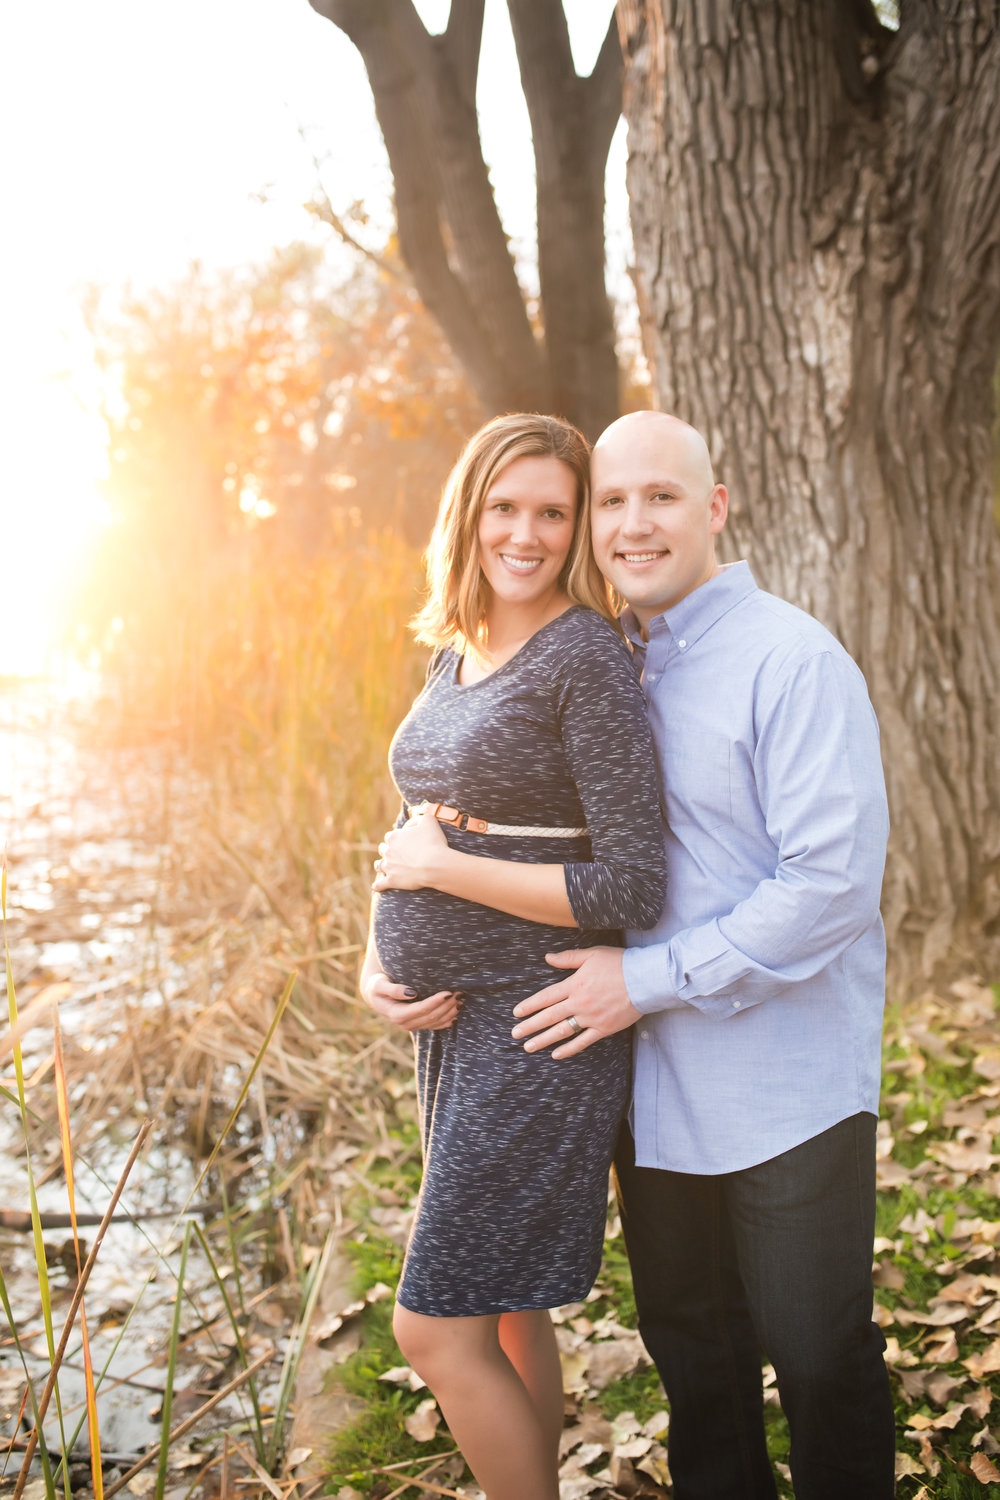 Sunset at Lodi Lake | Fall Maternity Session | Mary Humphrey Photography